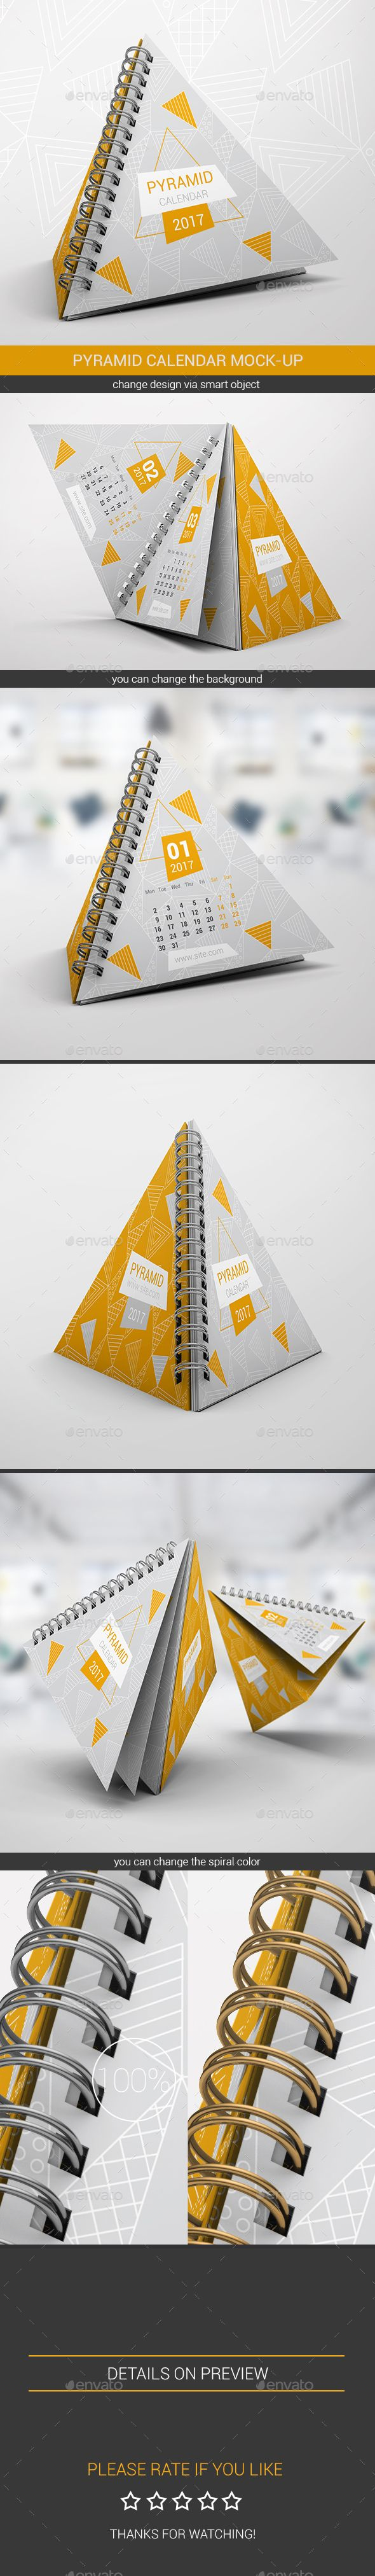 Pyramid Calendar Mock-Up